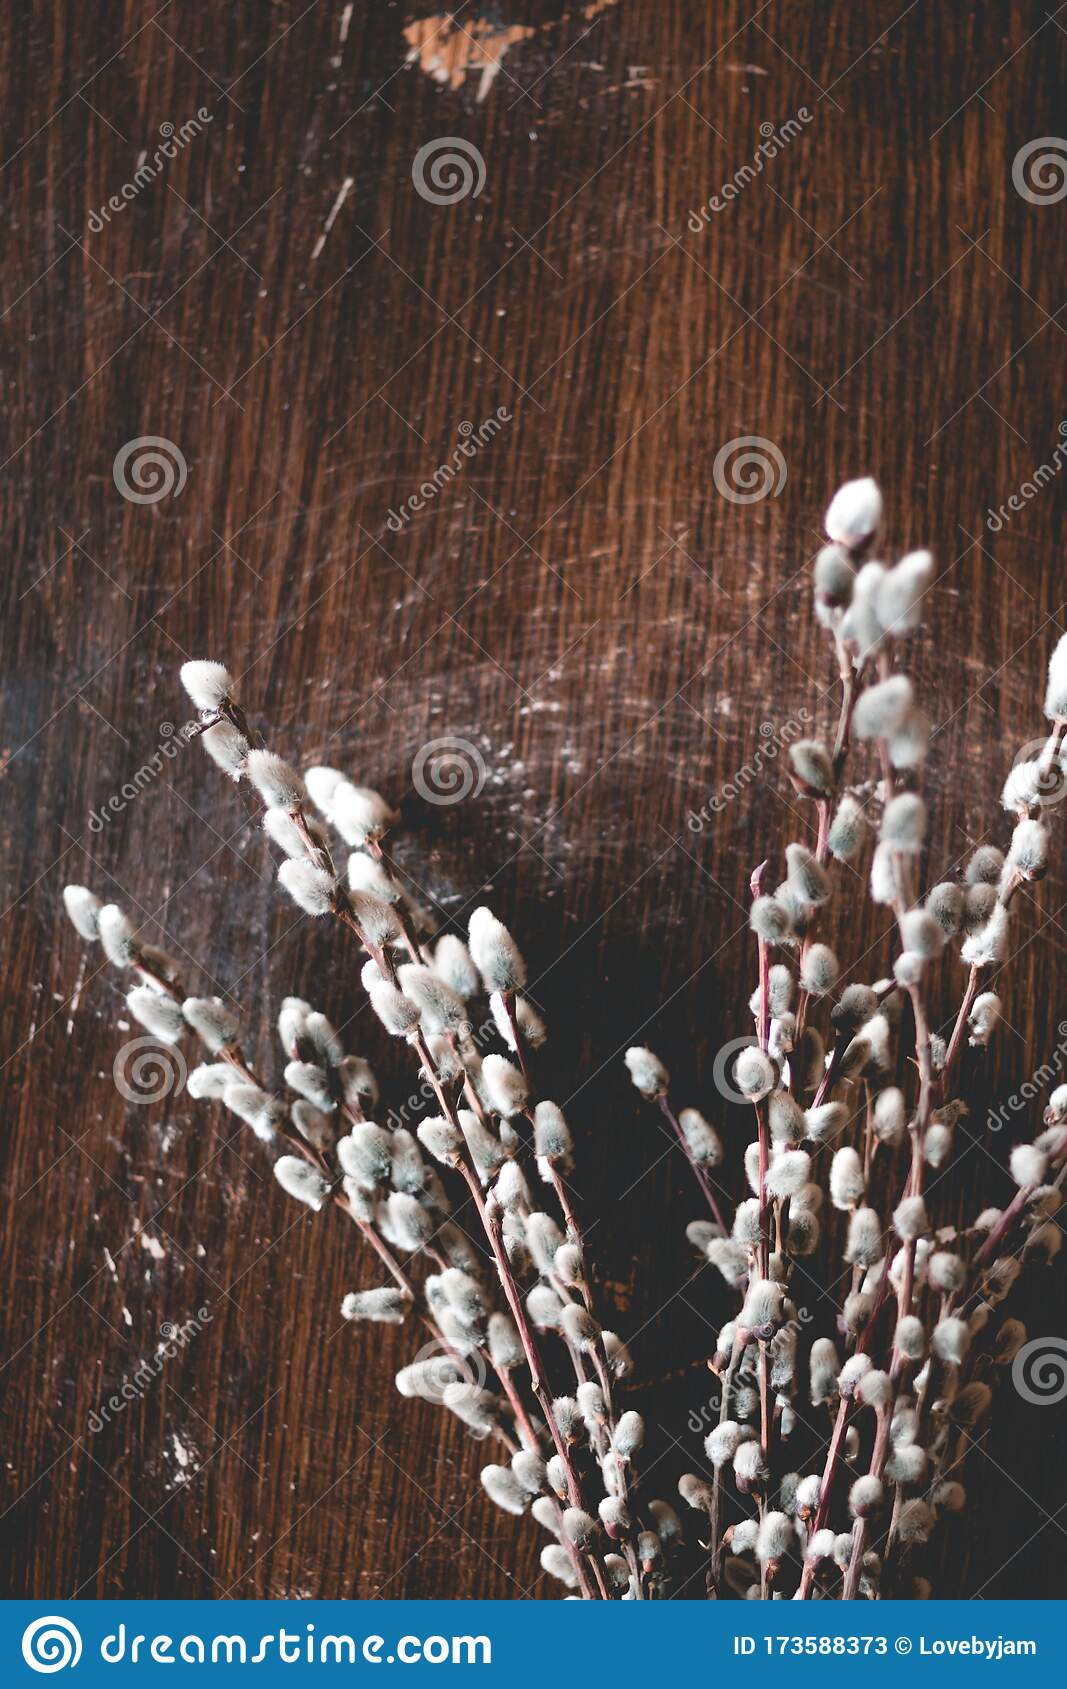 Cute Willow Branches On Wooden Table Flat Lay View Hello Spring Concept Tree Branch Close Up Stock Image Image Of Decorative Nature 173588373